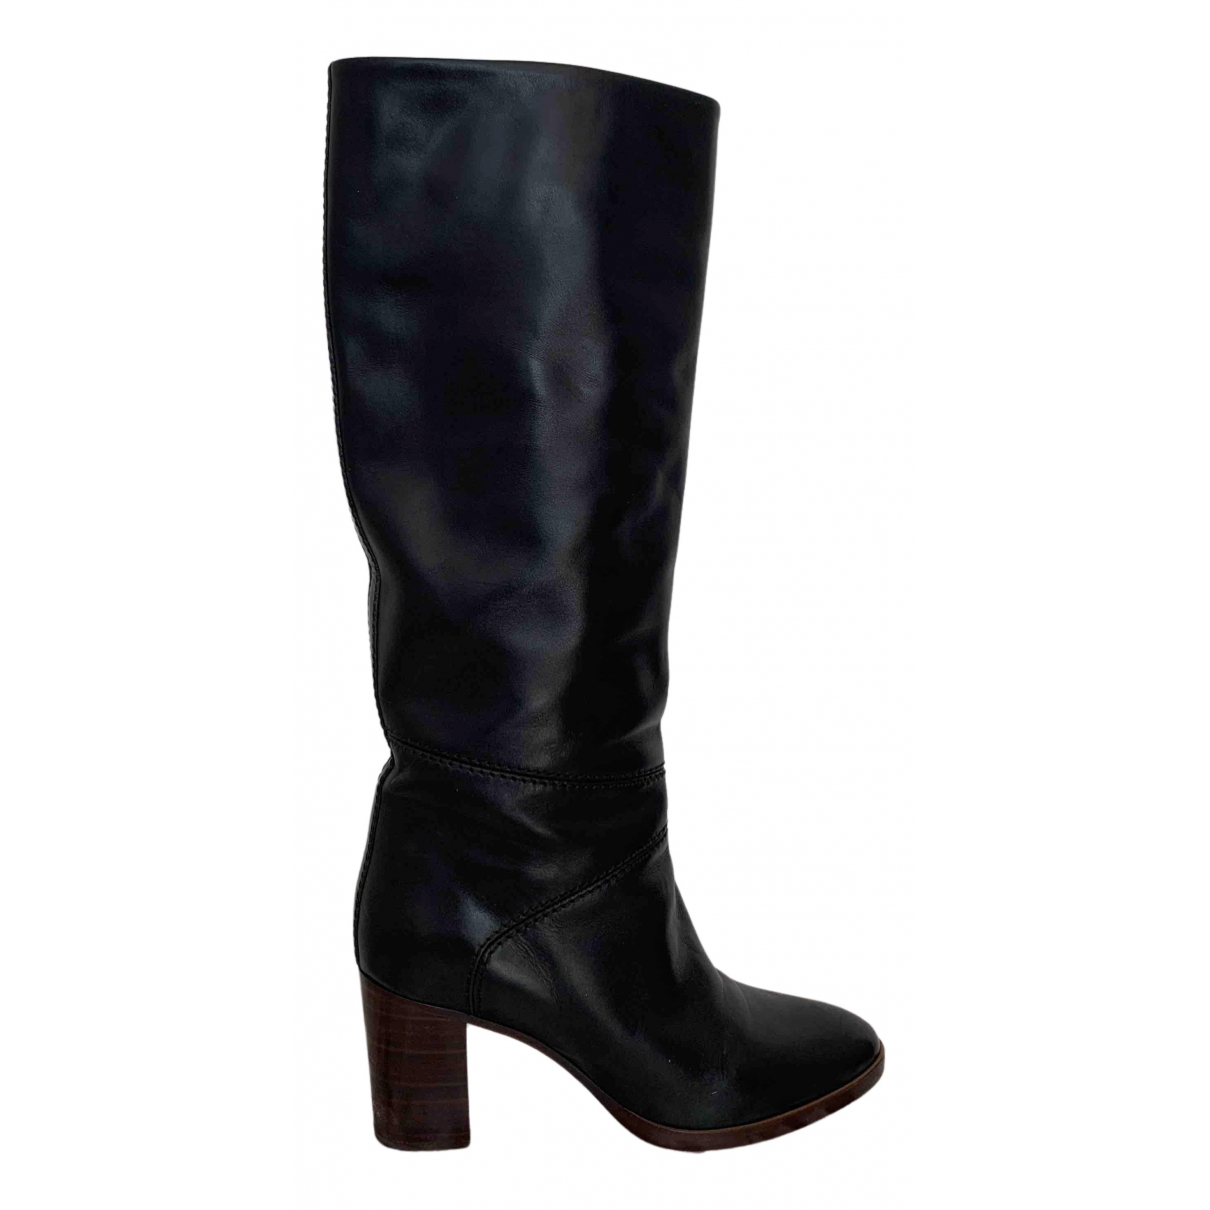 Chloé N Black Leather Boots for Women 38 IT